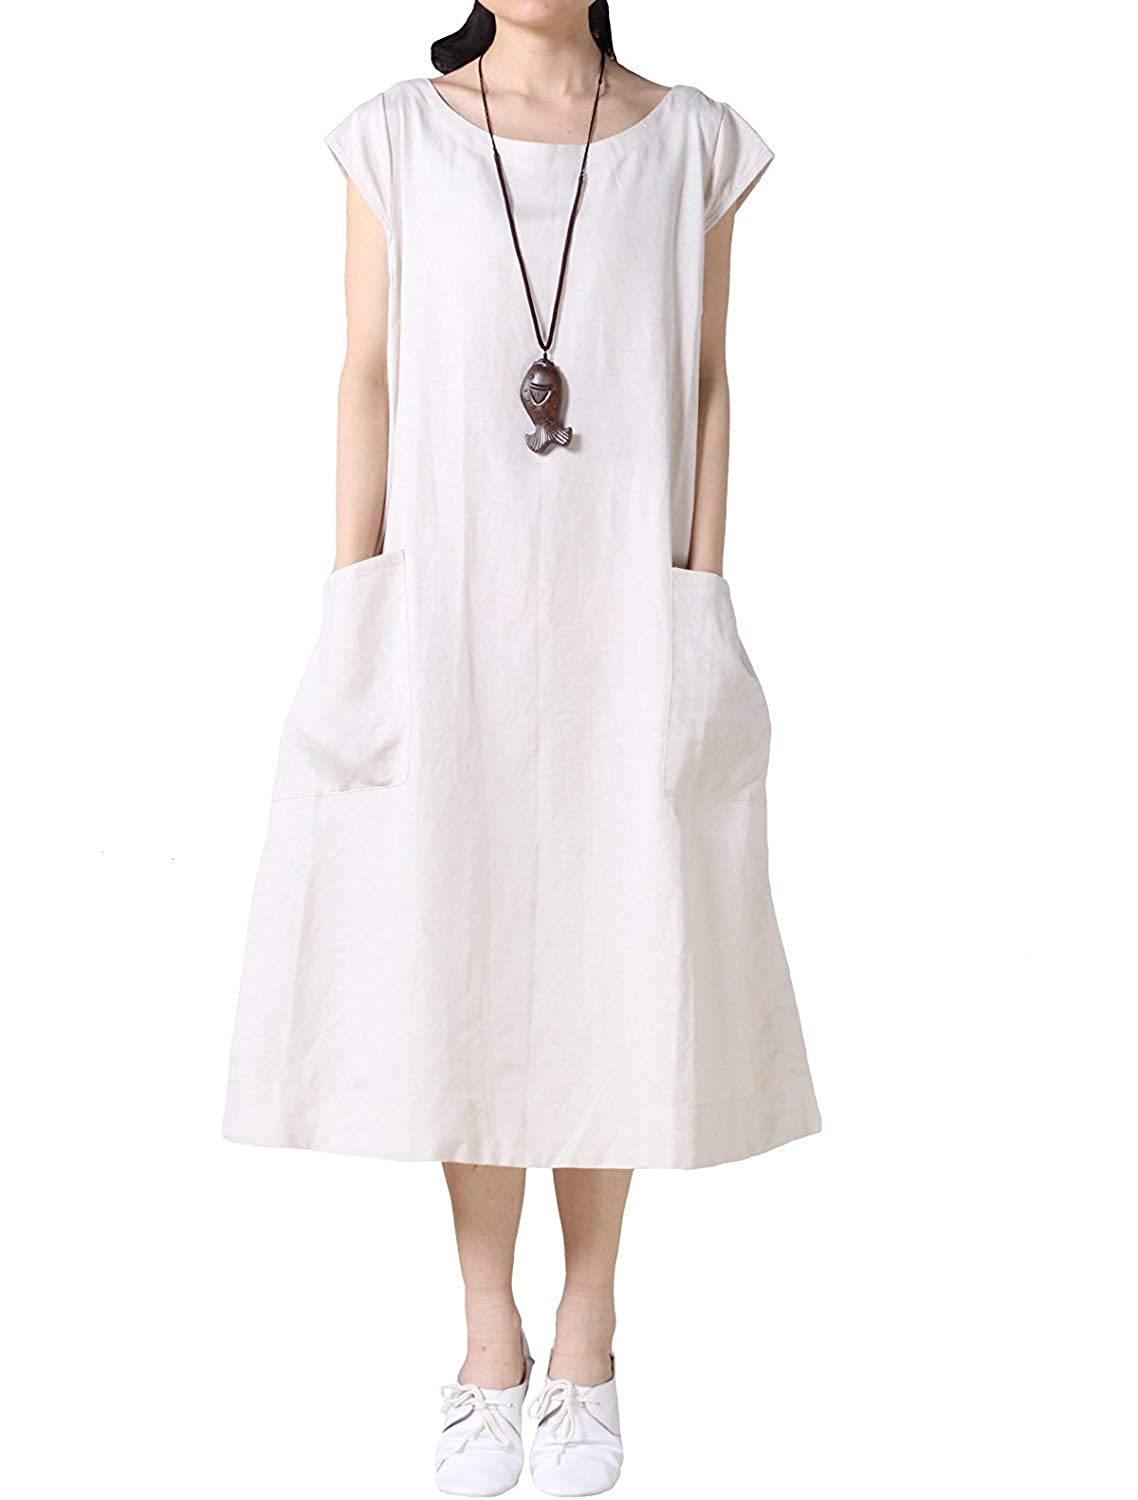 Old Fashioned Dresses | Old Dress Styles Mordenmiss Womens Cotton Linen Dresses Cap Sleeve Summer Dress with Pockets $39.99 AT vintagedancer.com